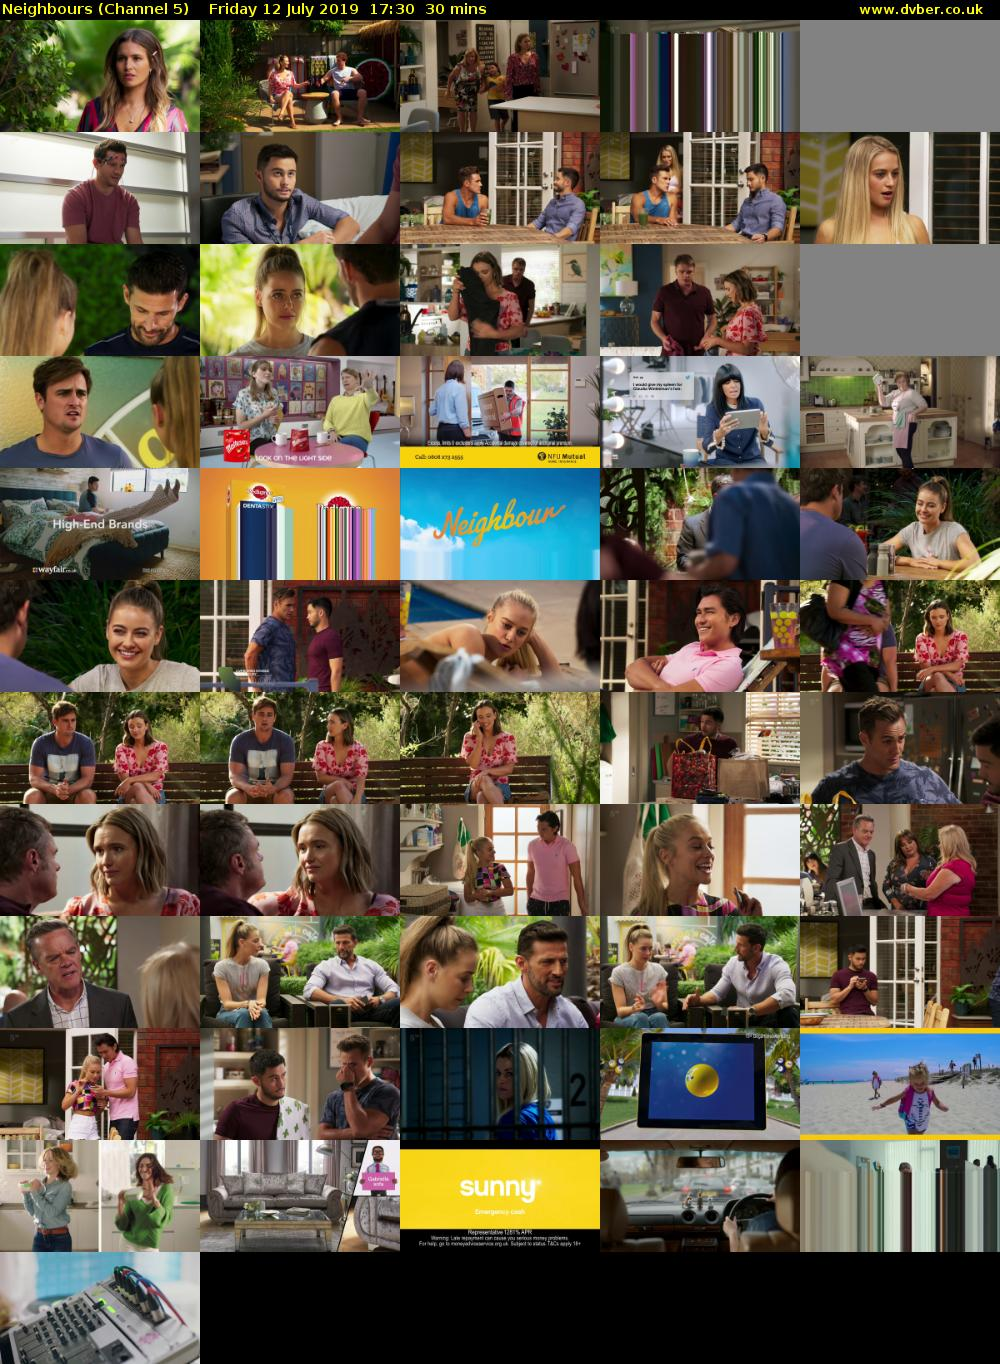 Neighbours (Channel 5) Friday 12 July 2019 17:30 - 18:00